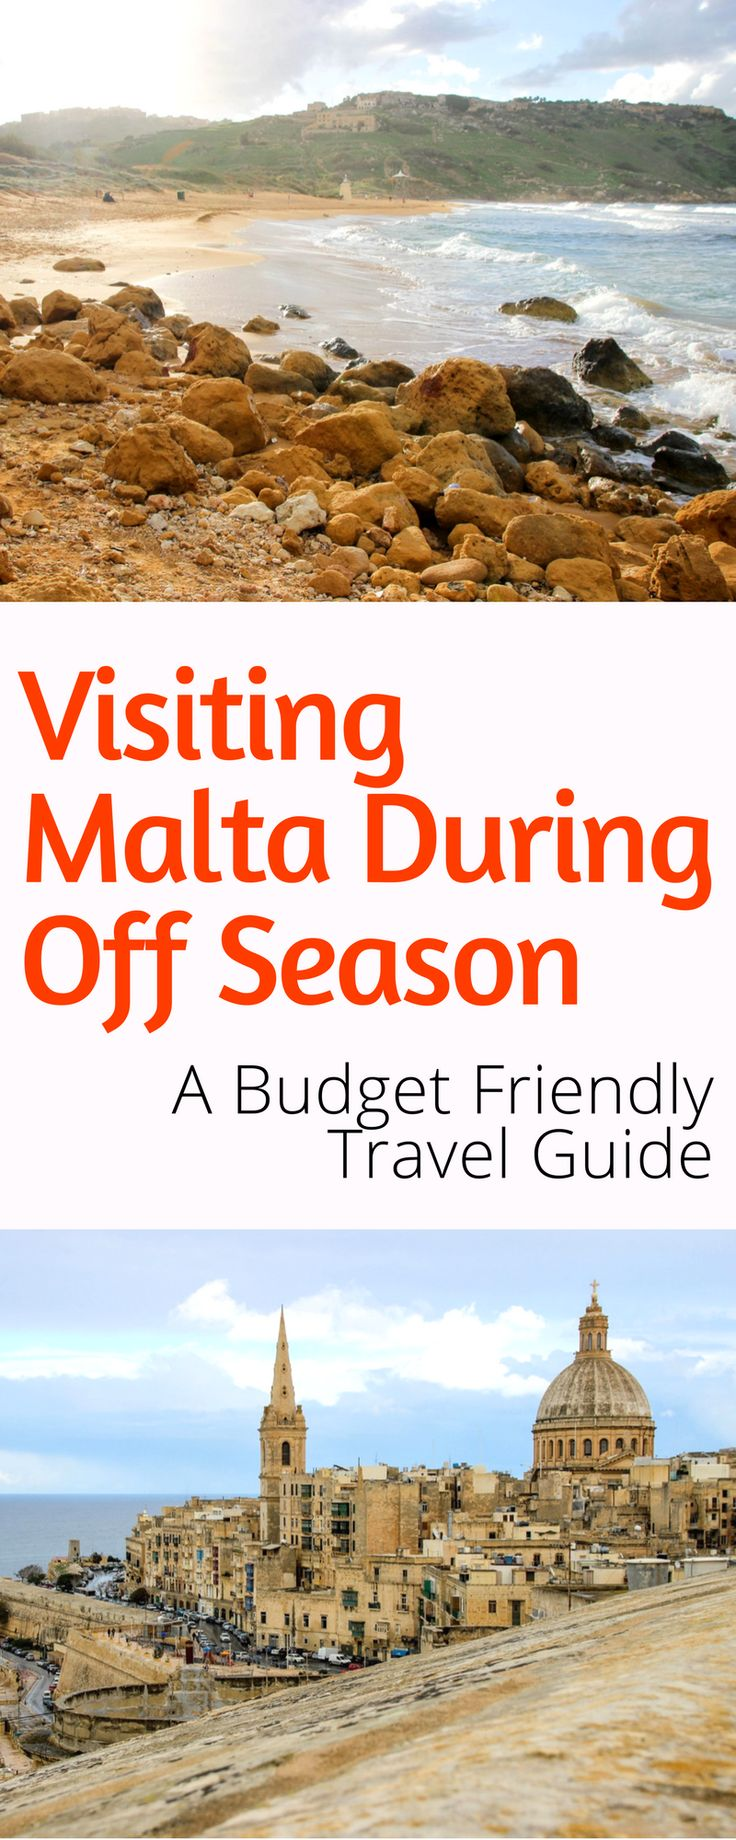 Visiting Malta During Off Season: A Budget travel guide to Malta during the off season. How to get there, what to see and do, where to stay, and more! Click here to start planning your trip today!